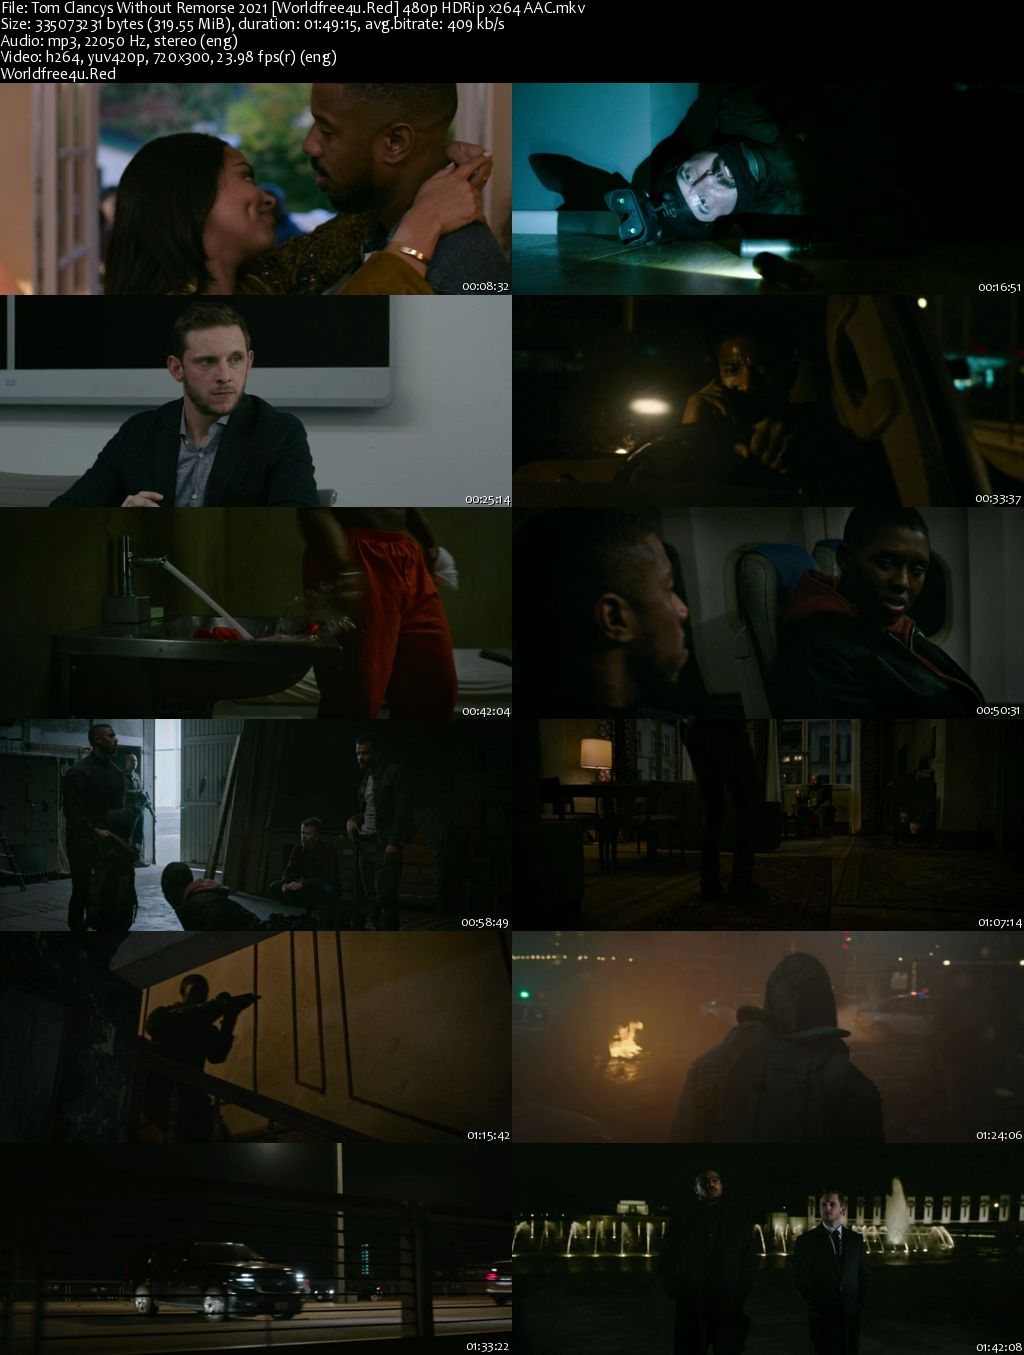 Without Remorse 2021 English HDRip 480p 300Mb